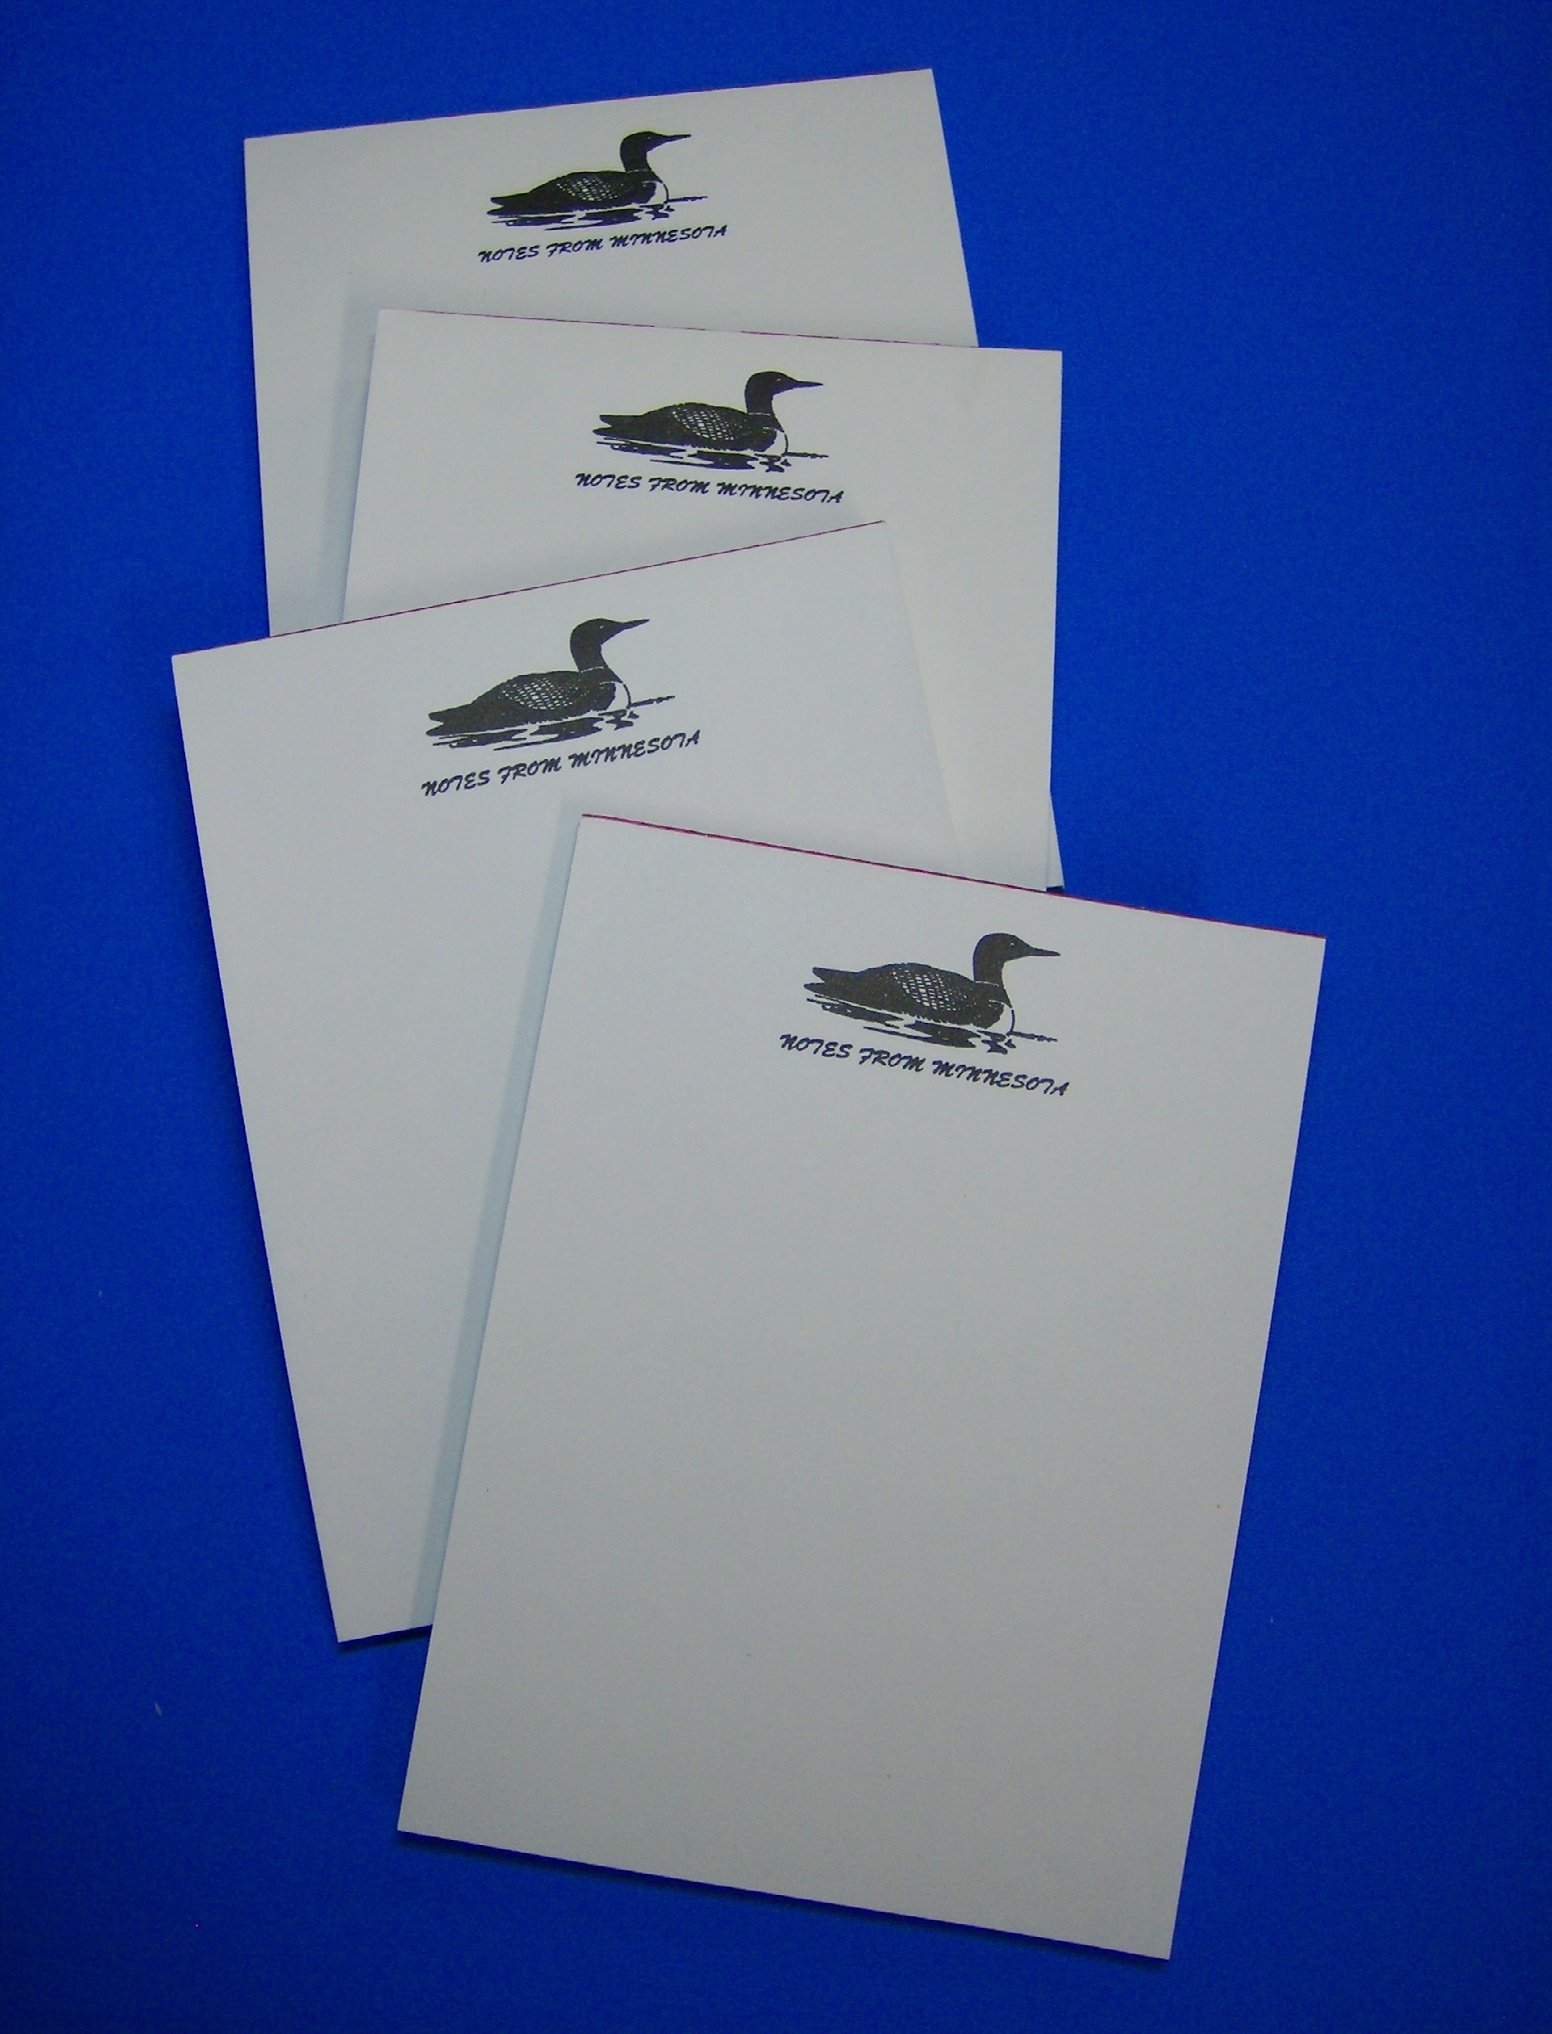 4 - Minnesota Souvenir Loon Notepads Memo Note Pad - Resort Gift Store Cabin Lakes by Select (Image #1)